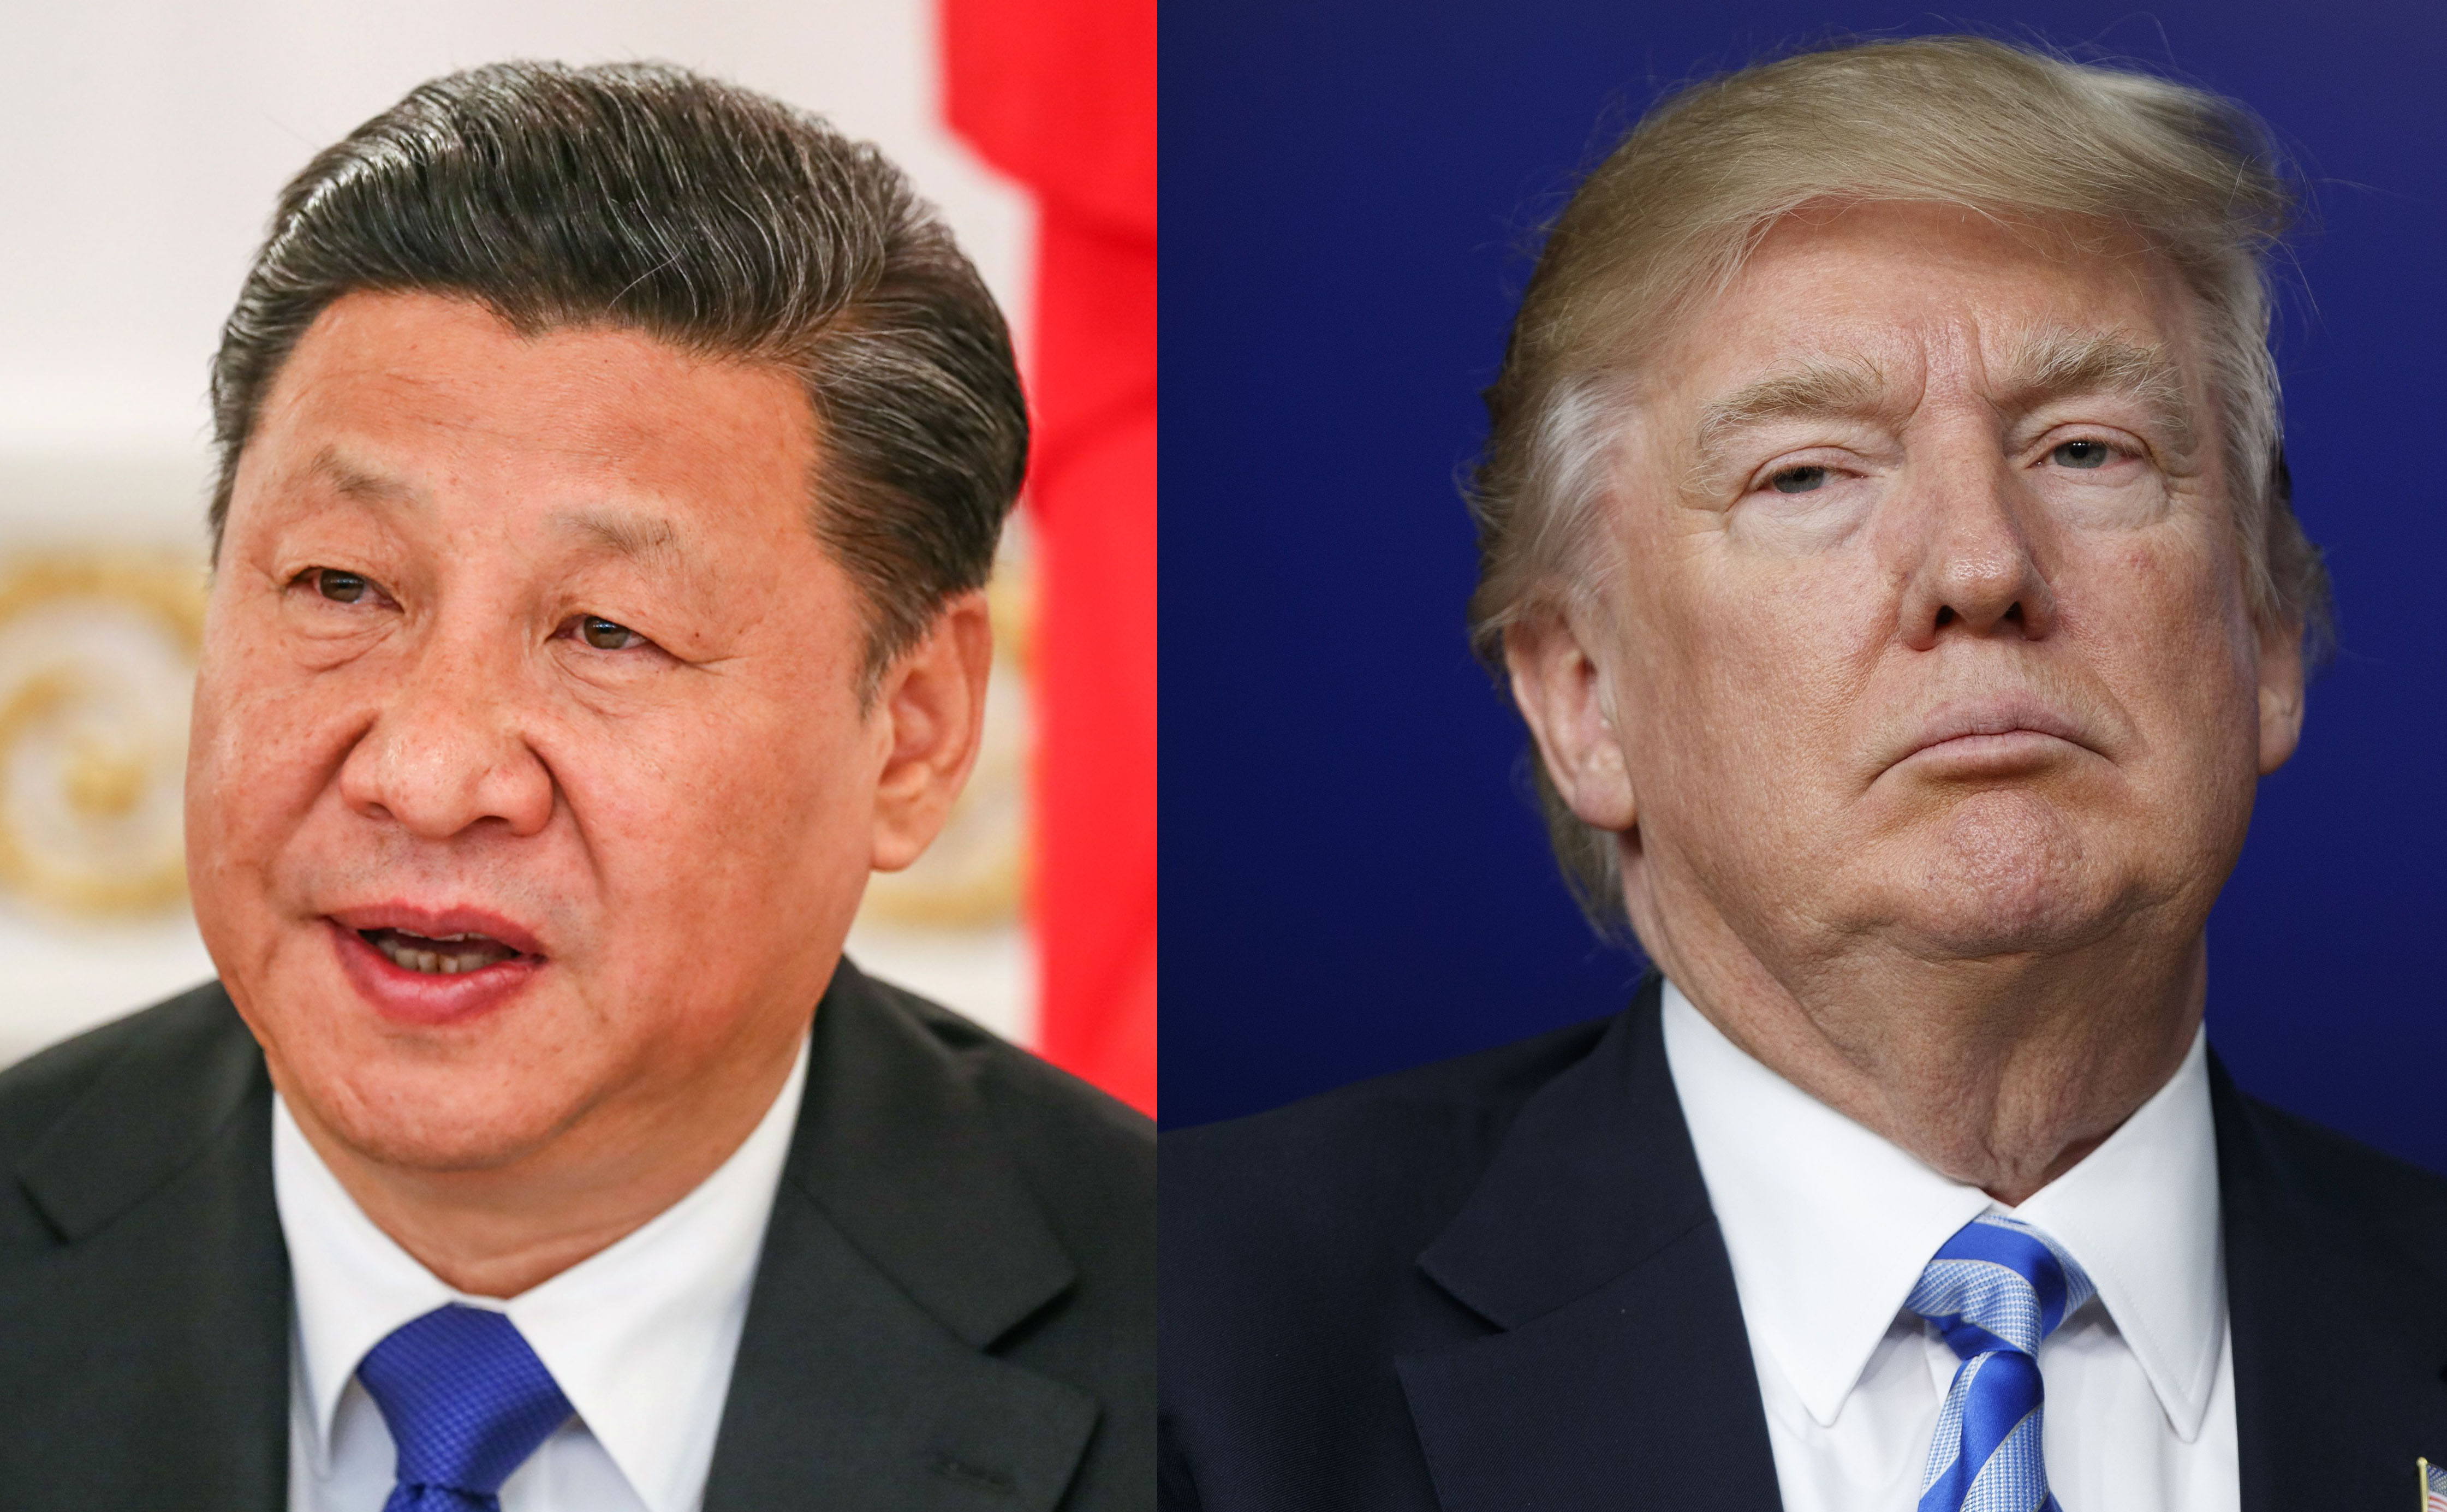 Chinese President Xi Jinping (left) and U.S. President Donald Trump (right)